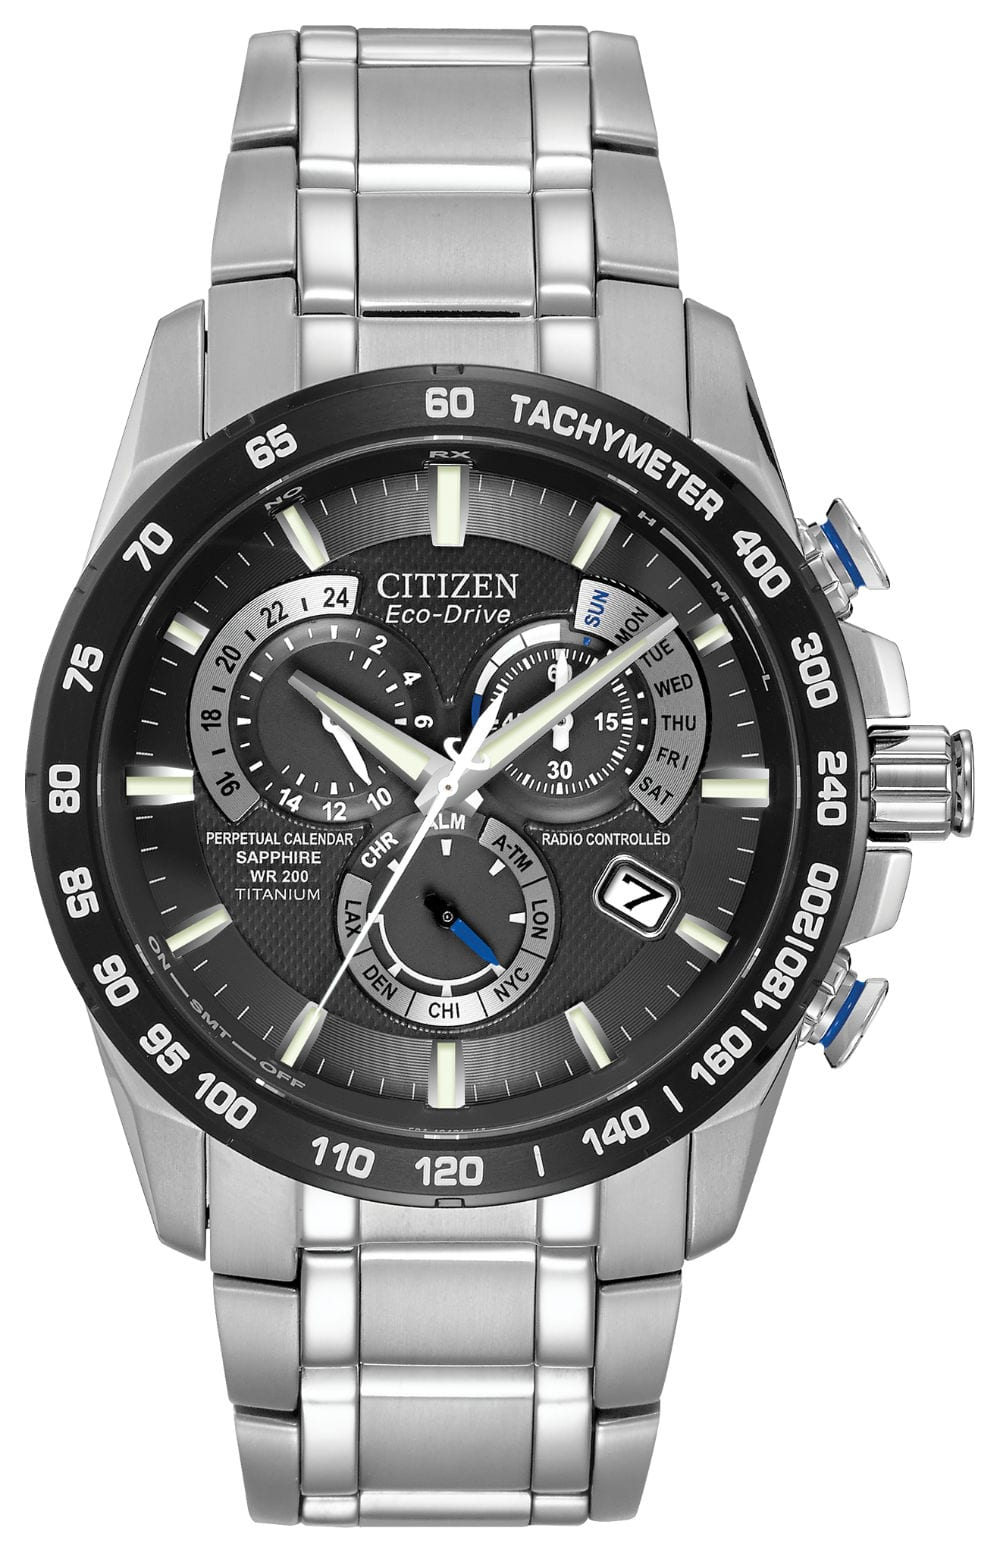 Sku 20206 Categories Citizen Eco Drive Collections Watches Tags Atomic Chronograph Gents Mens Pcat Perpetual Calendar Radio Controlled